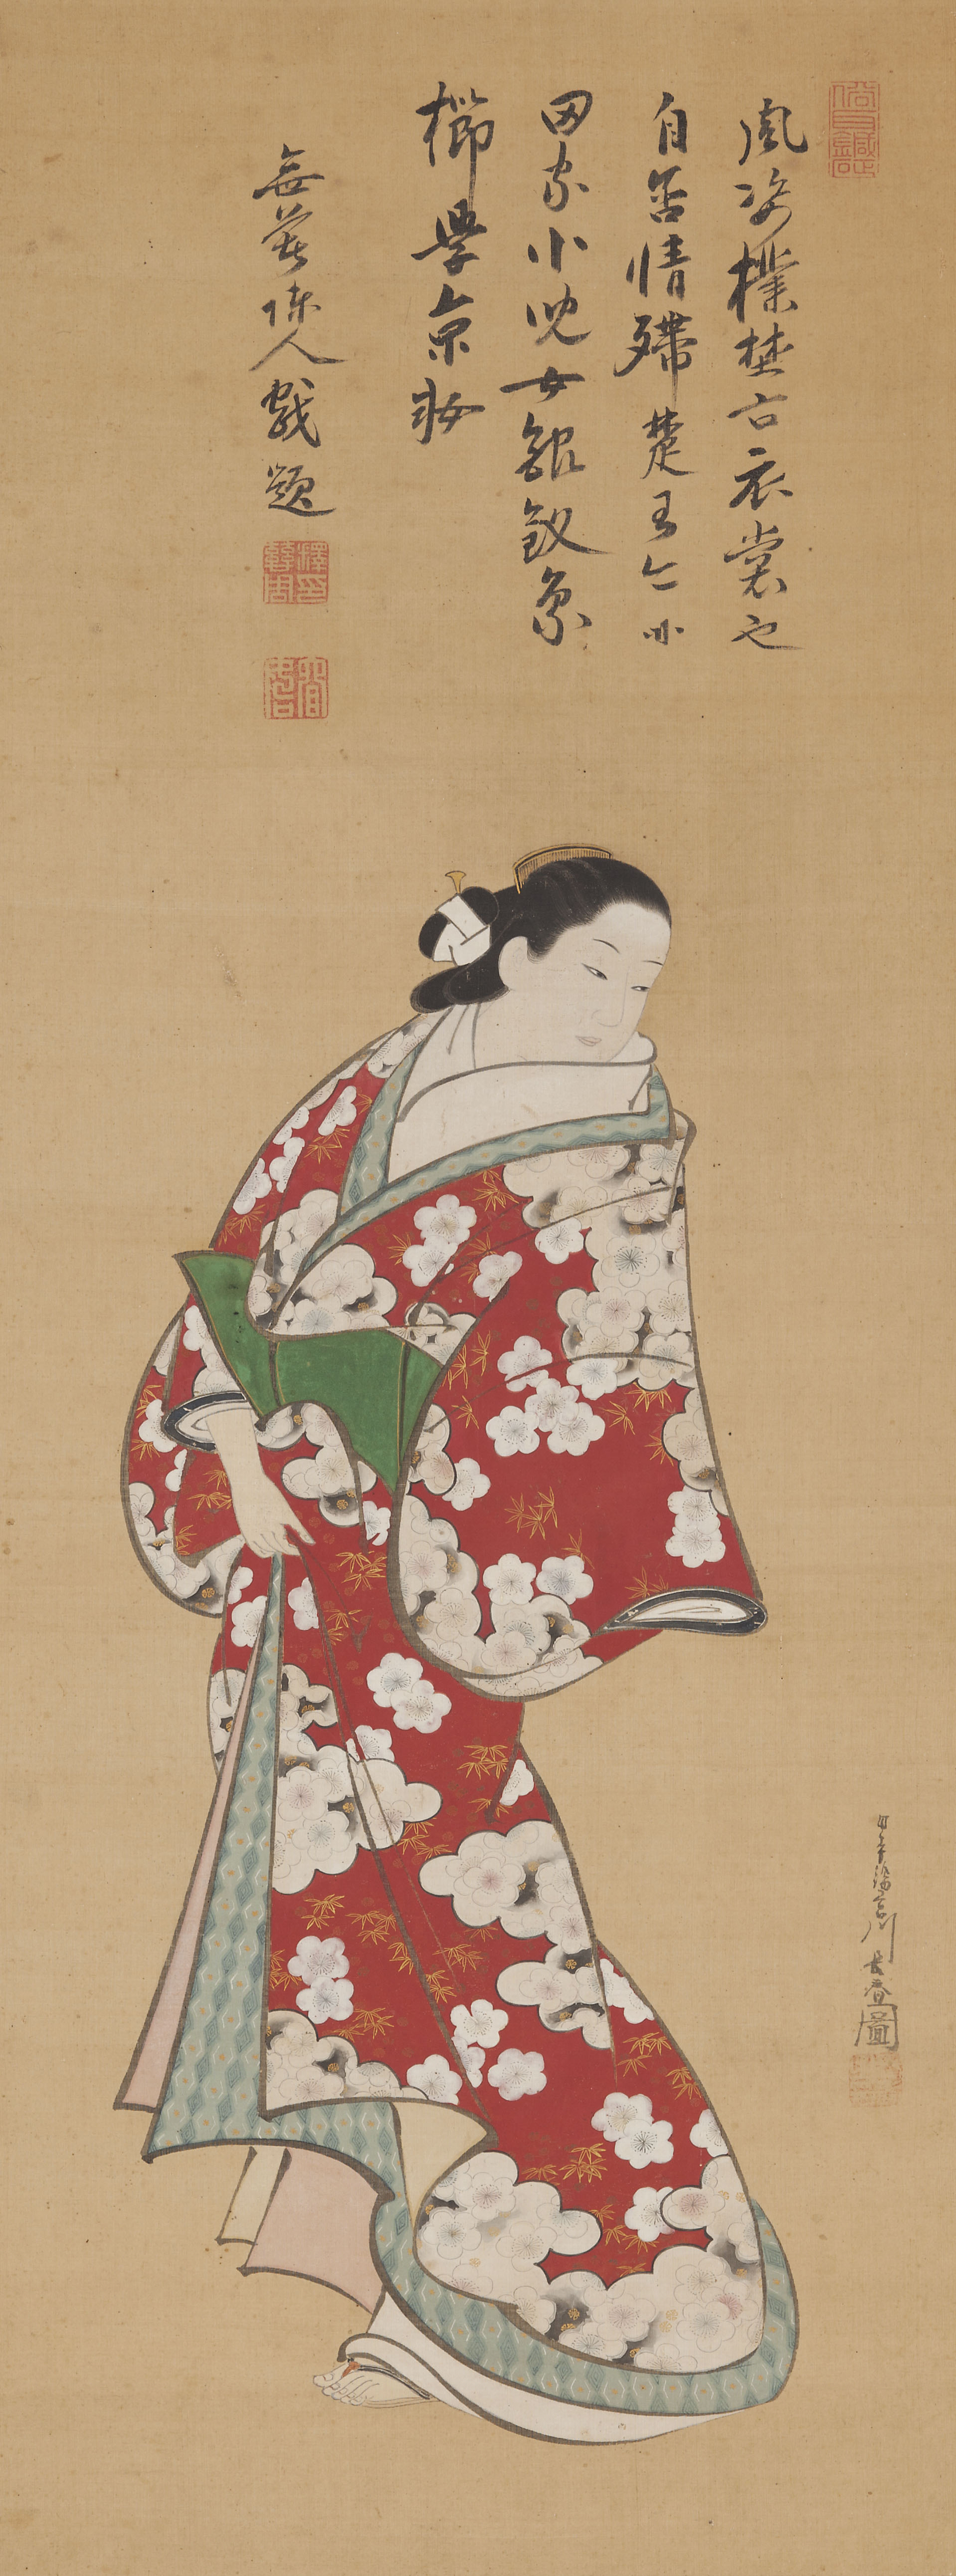 Compete in beauty: World of Ukiyo-e Painting from the Hikaru Museum Collection